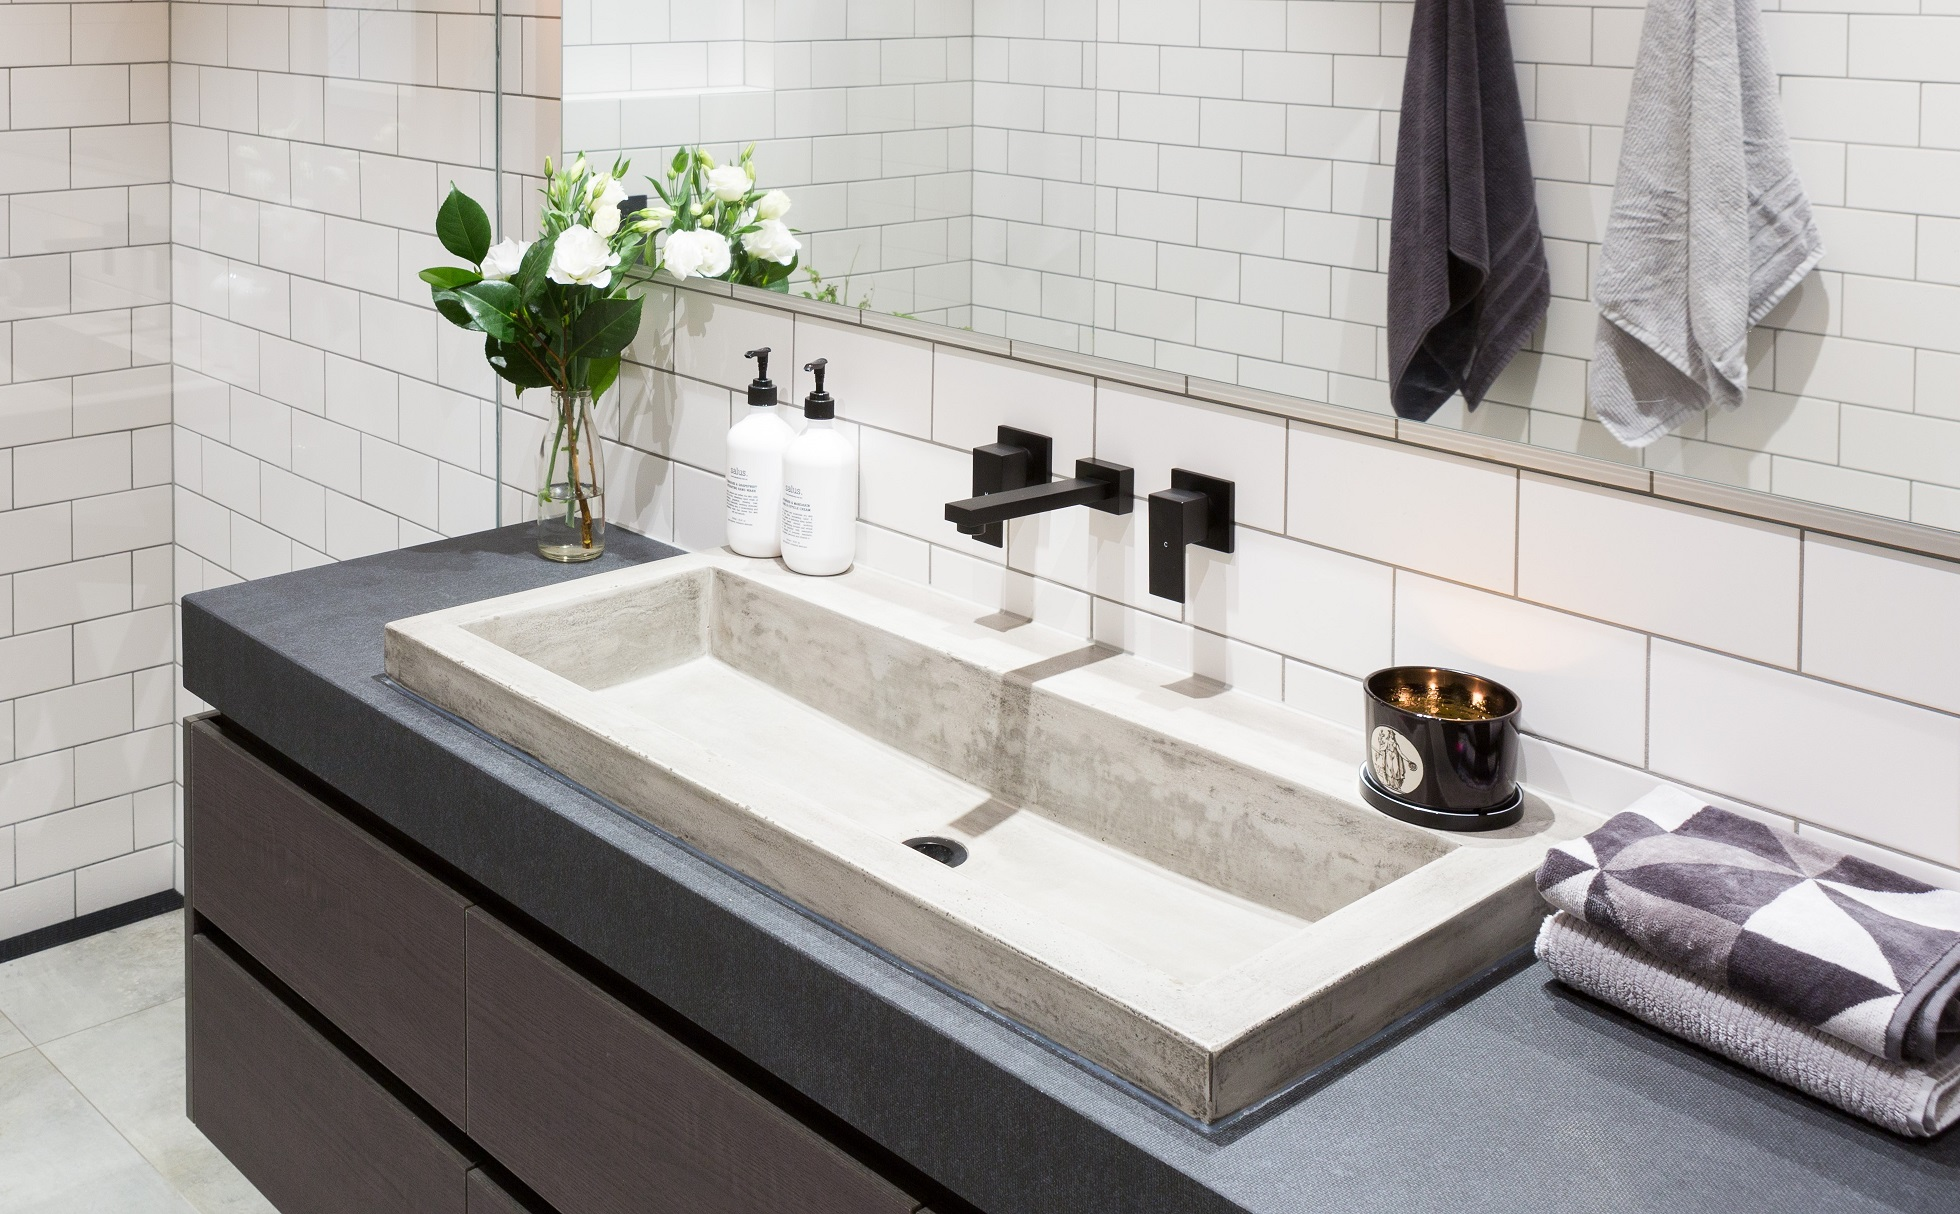 What Type of Tapware Suitable For Your Bathroom? Regular or Matte Black